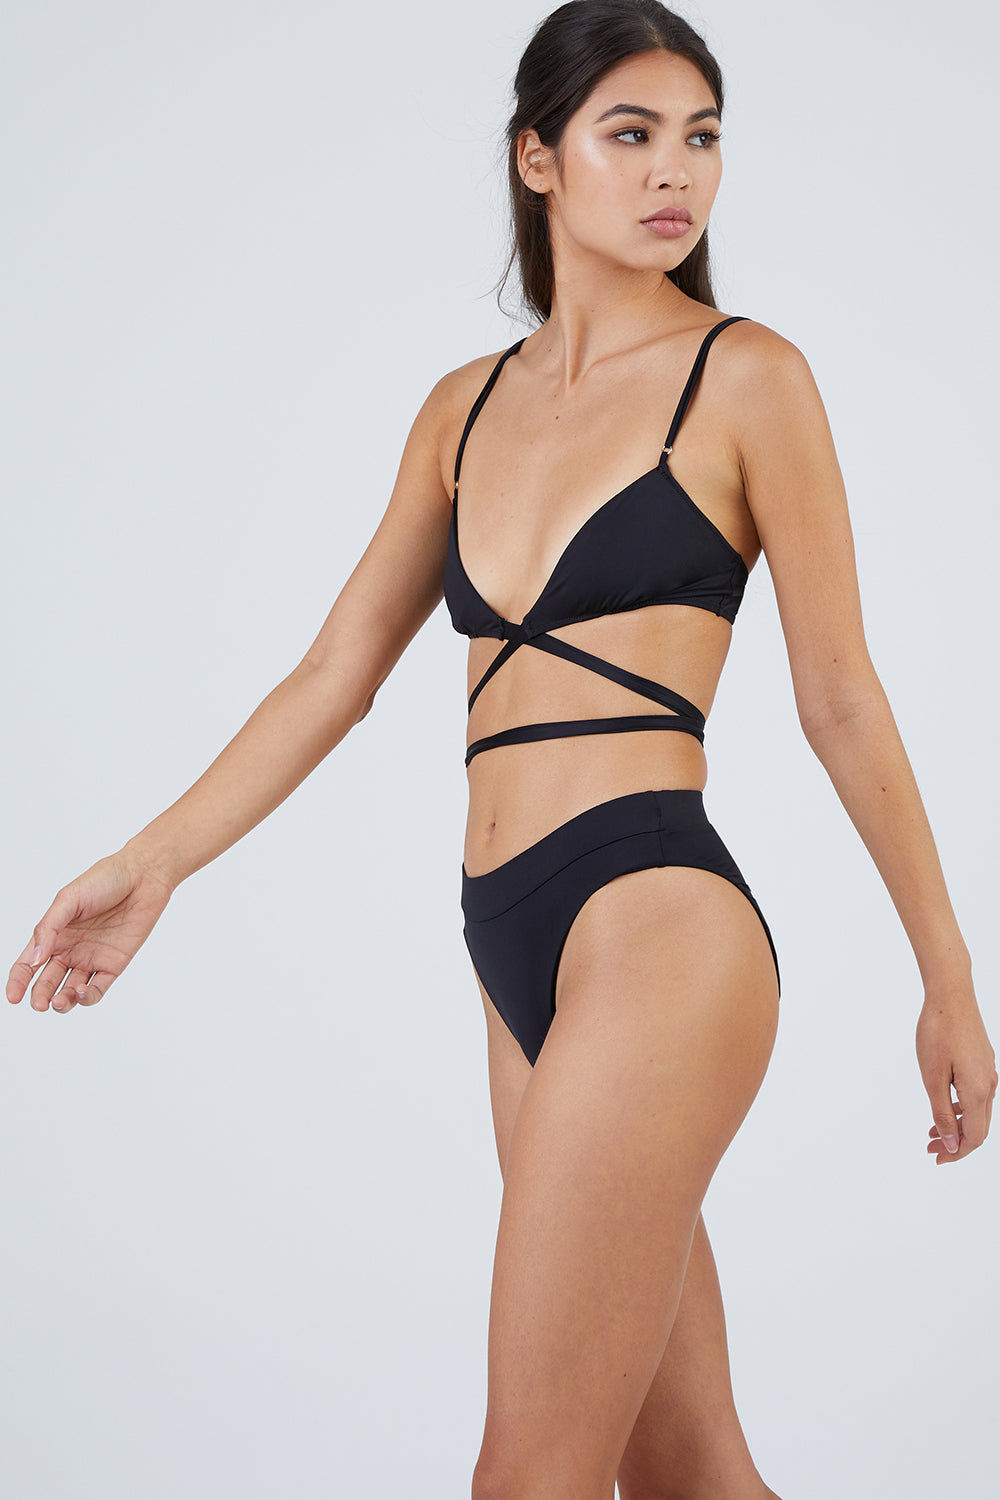 MONICA HANSEN BEACHWEAR That 90's Vibe High Waisted Bikini Bottom - Black Bikini Bottom | Black| Monica Hansen That 90's Vibe High Waisted Bikini Bottom - Black Thick Waist Band  High Waisted  High Cut Leg  Moderate Coverage  Front View